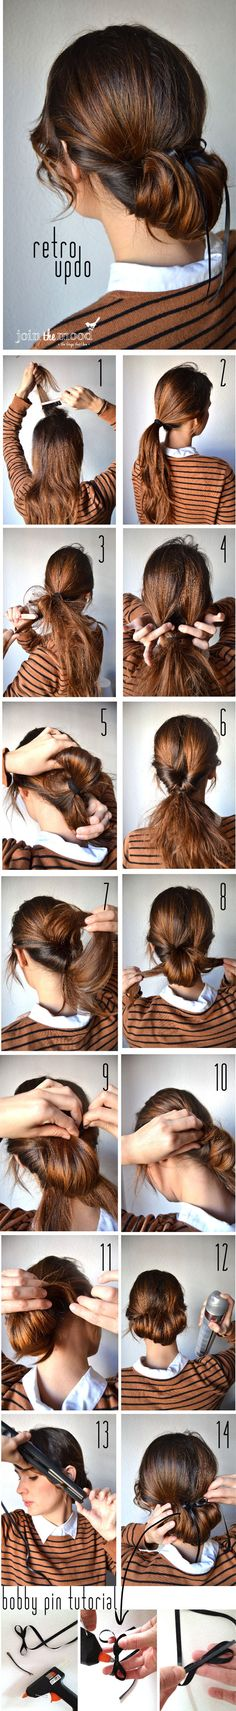 Retro Updo: Someday I'll learn to do my hair like a real girl! And this looks pretty simple :)